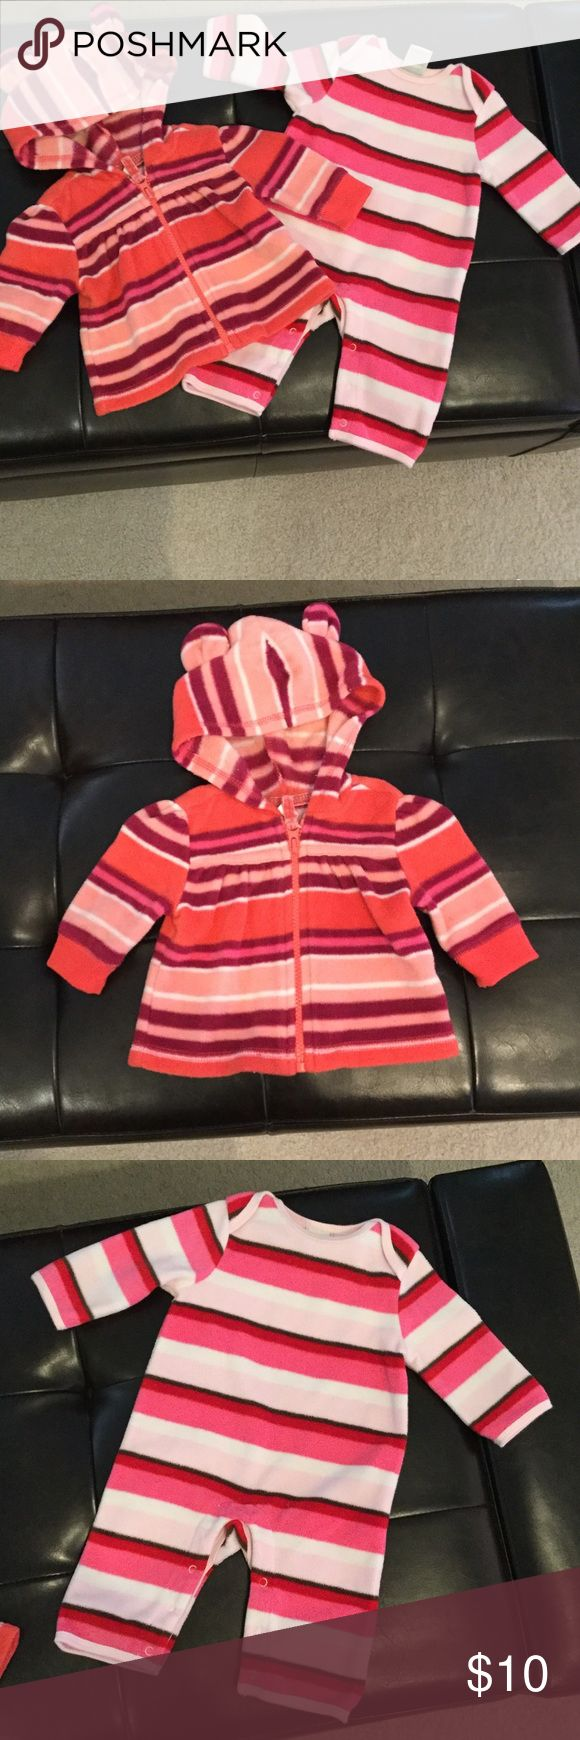 Fleece jacket - fleece romper Old Navy Orange striped zip up hooded jacket with ears on the hood - Old Navy pink striped one piece romper. Old Navy Other